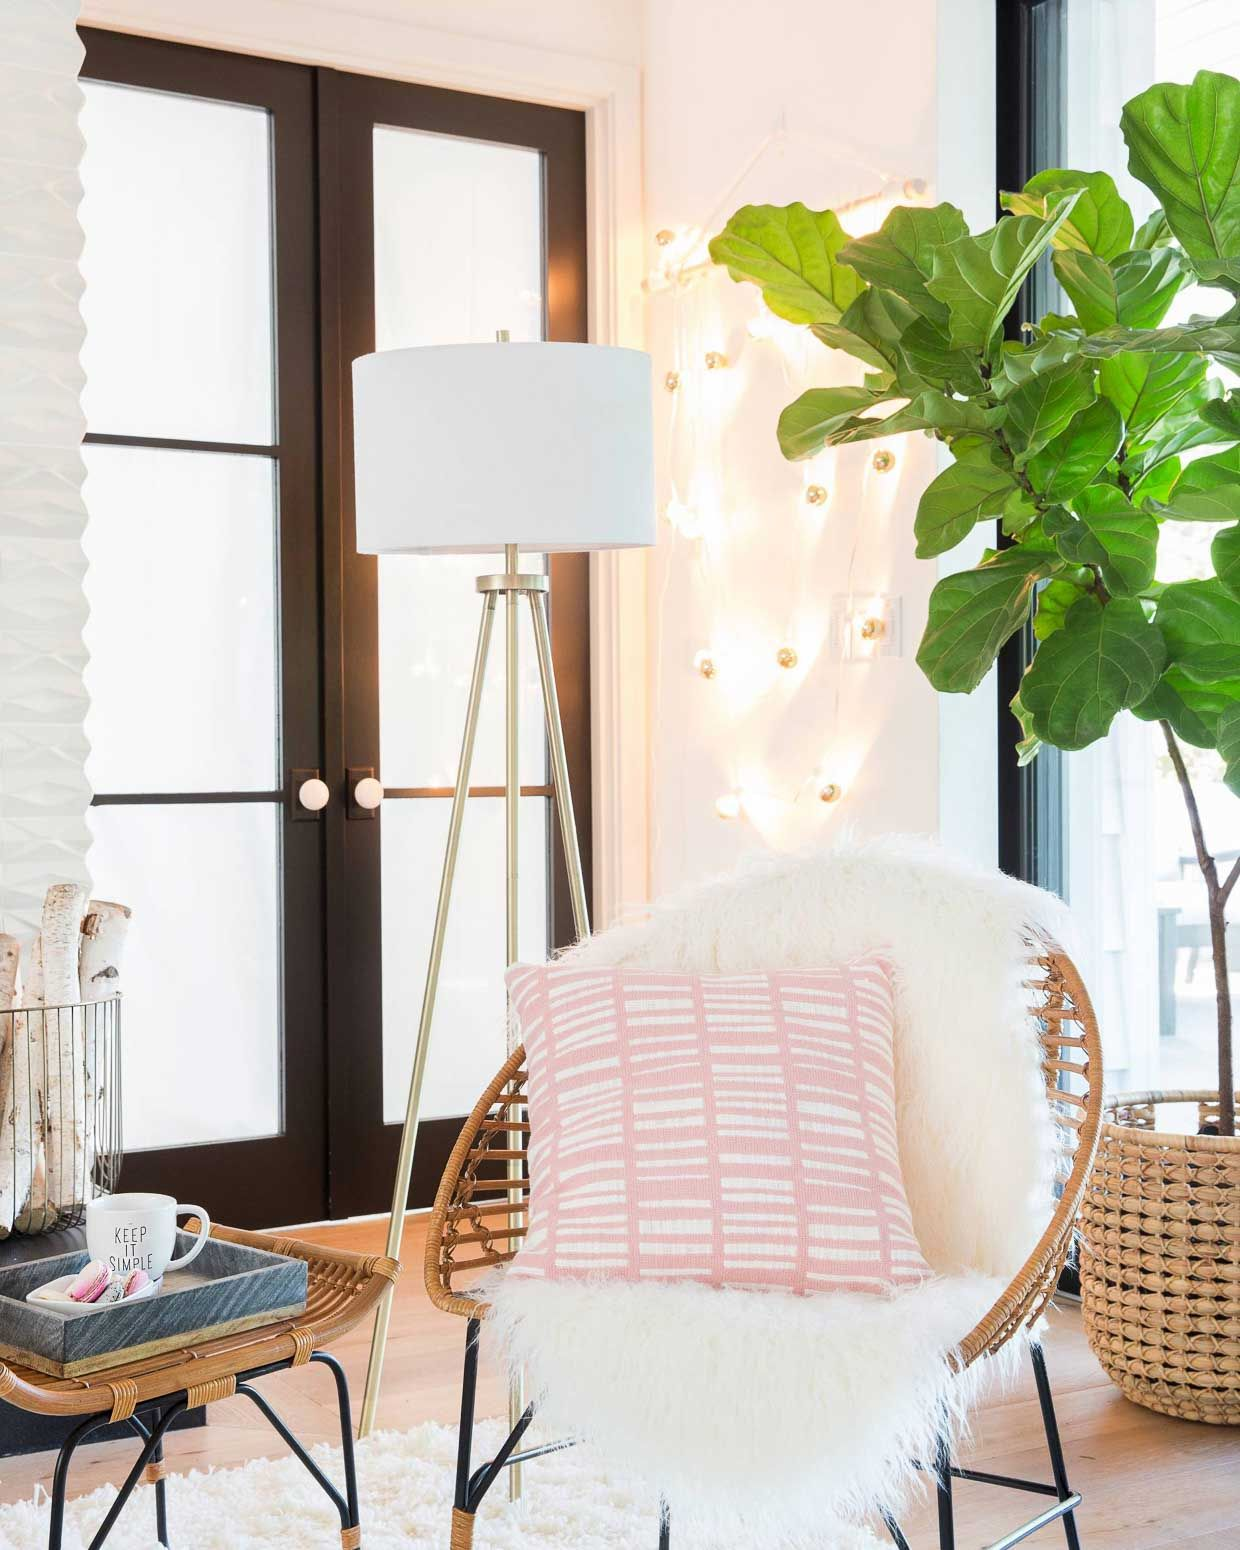 Target Home Decor - Home Decorating On A Budget | Budgeting, Target ...